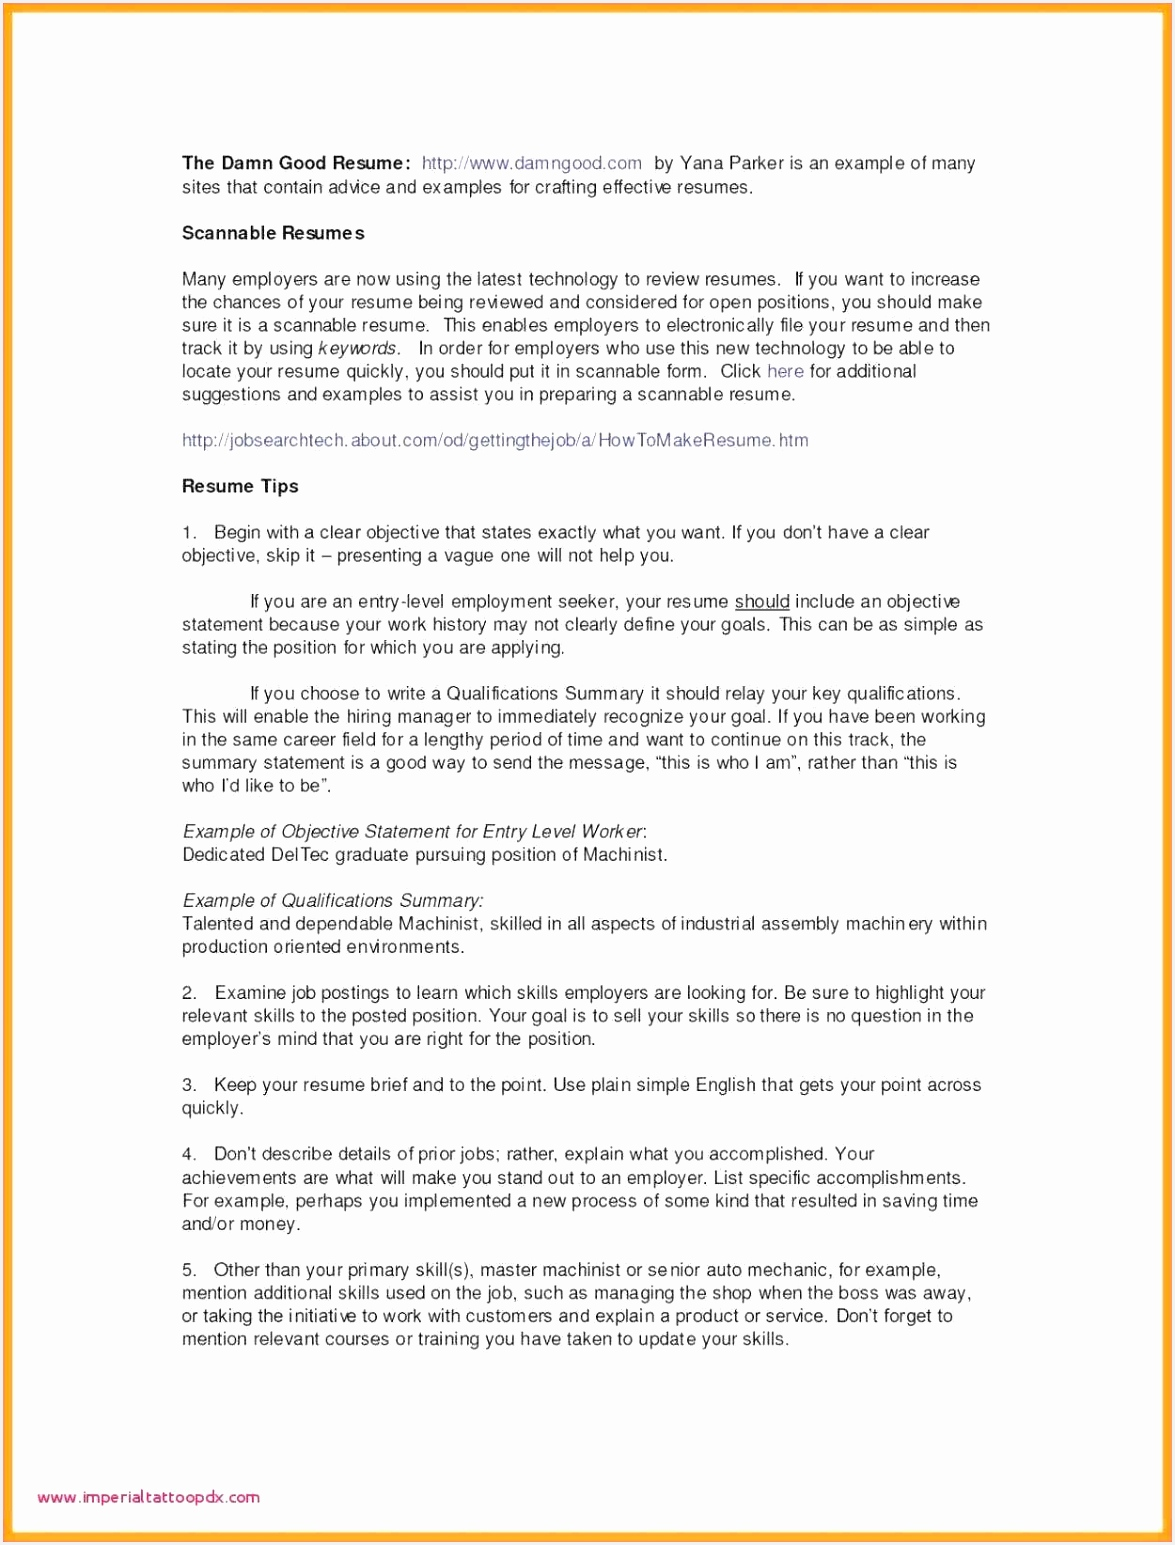 Our Best Gallery of 57 Sample Resume Objectives for Entry Level Jobs 15451175myRnh